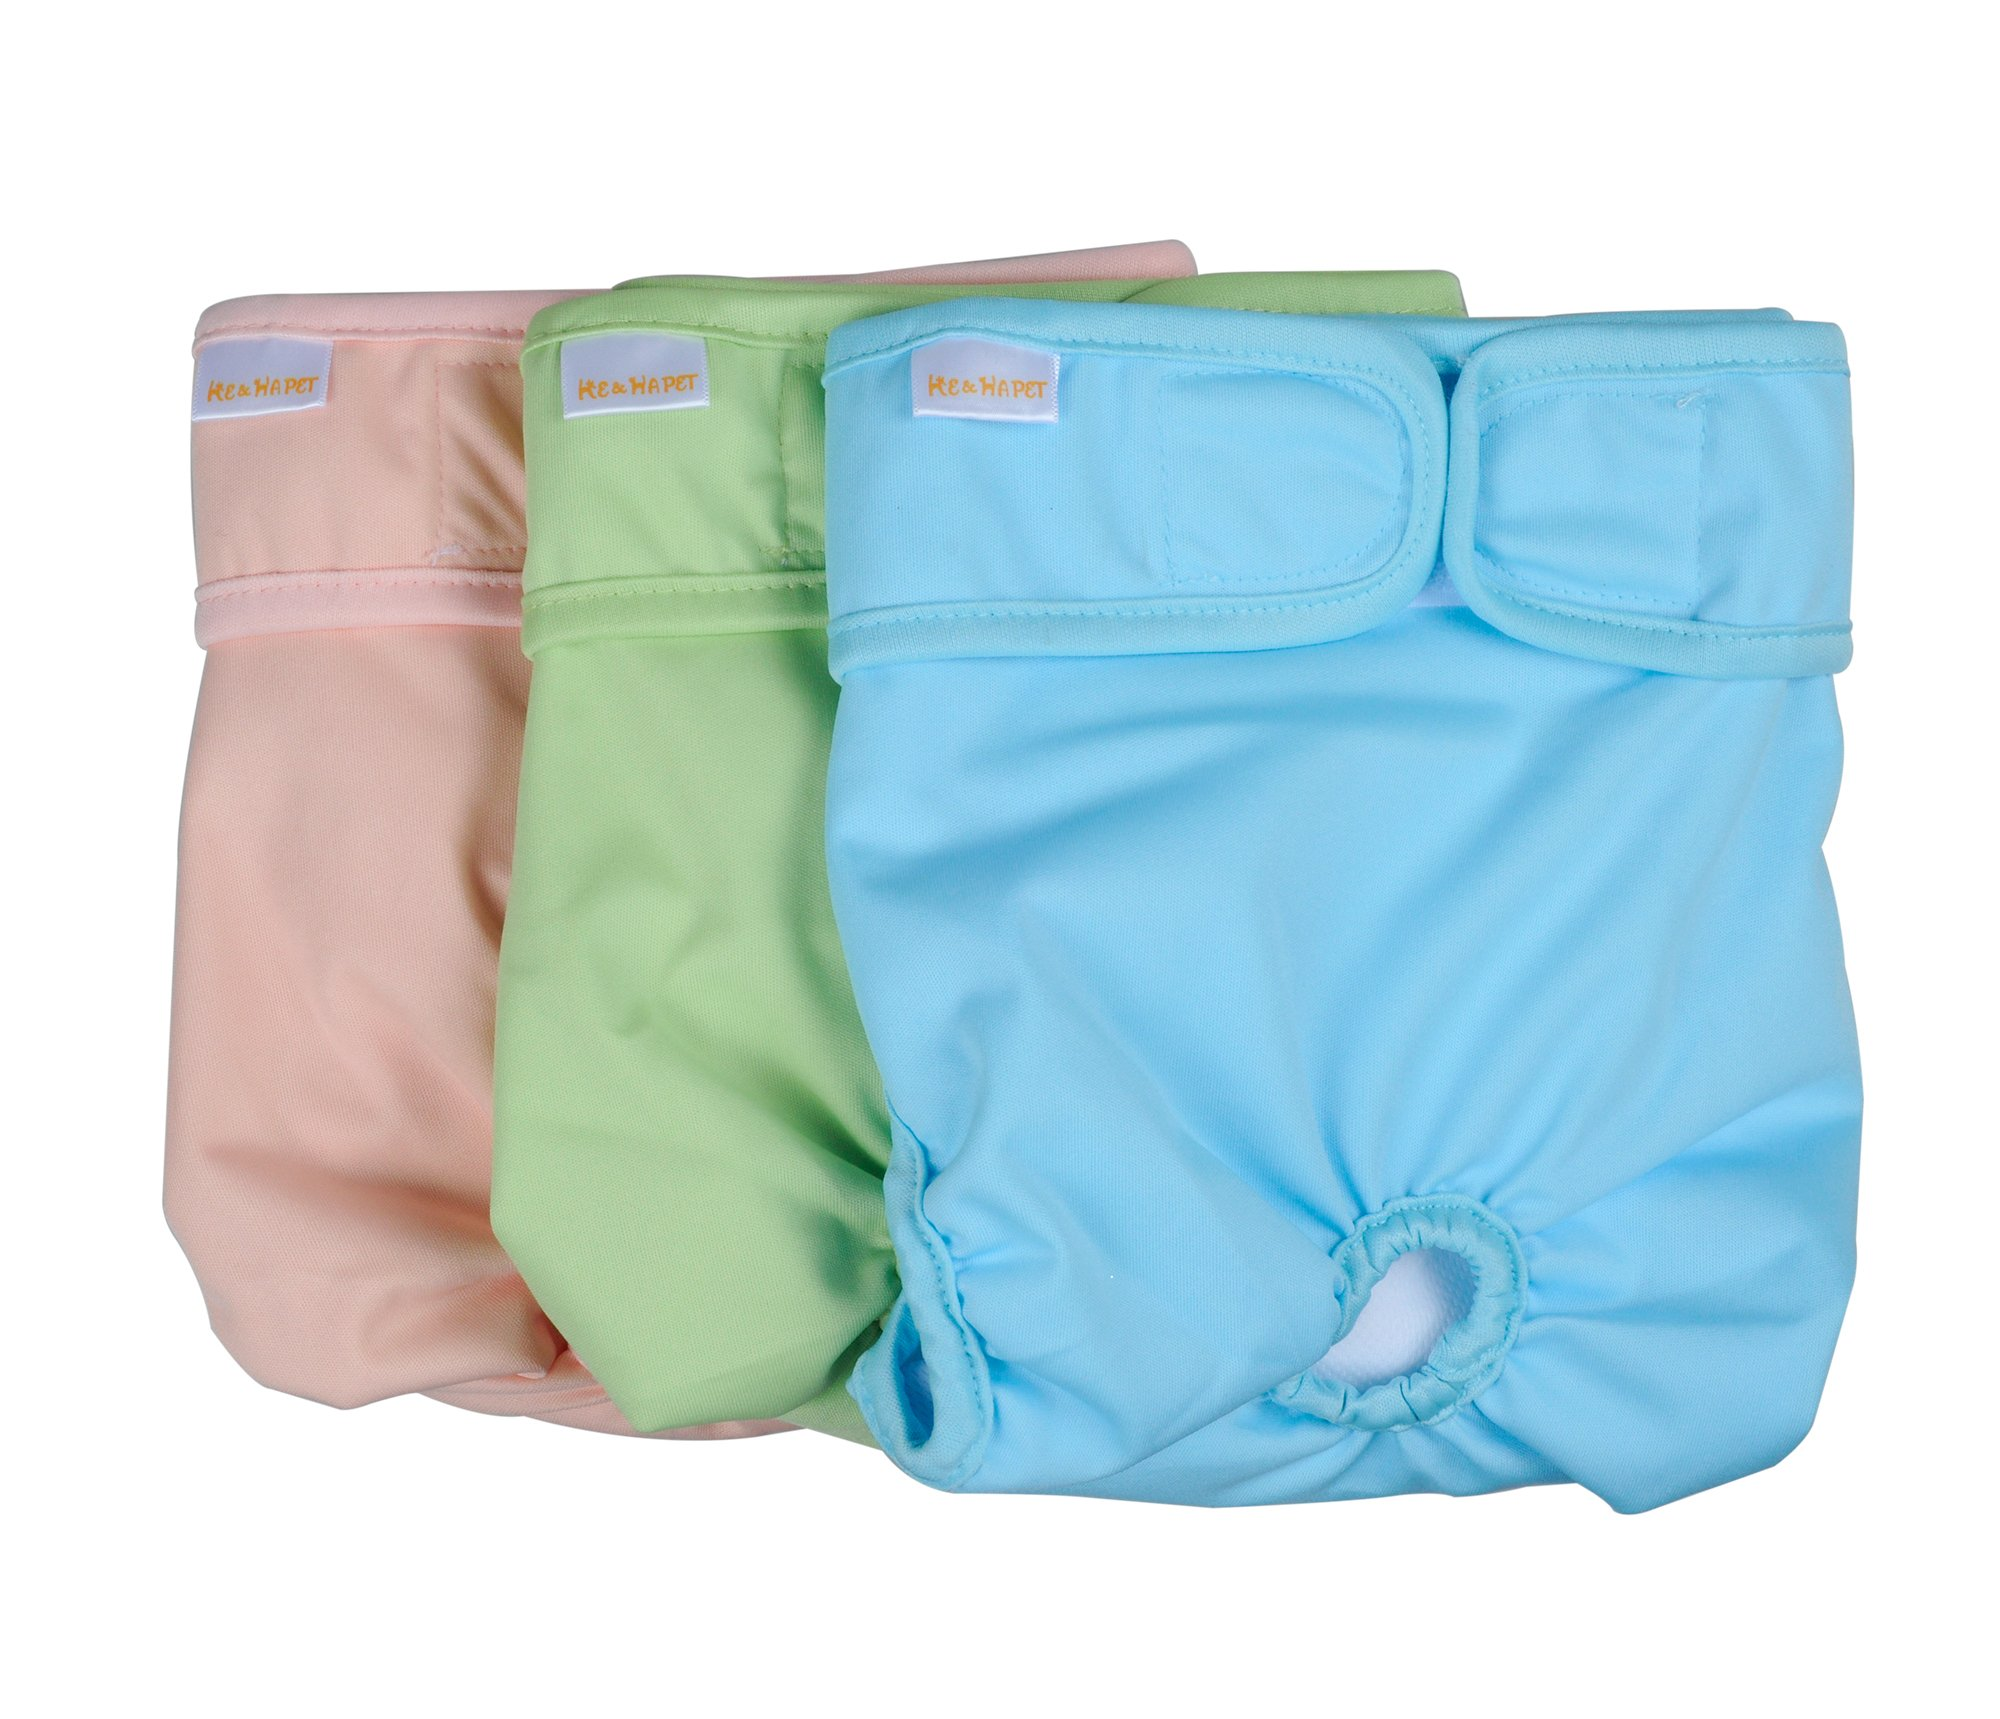 """Female Dog Diapers Washable He&Ha Pet Doggie Diaper Reusable Small Padded Cloth Sanitary Panties Set of 3 for Waist 13"""" to 16"""" Pastel Colors"""